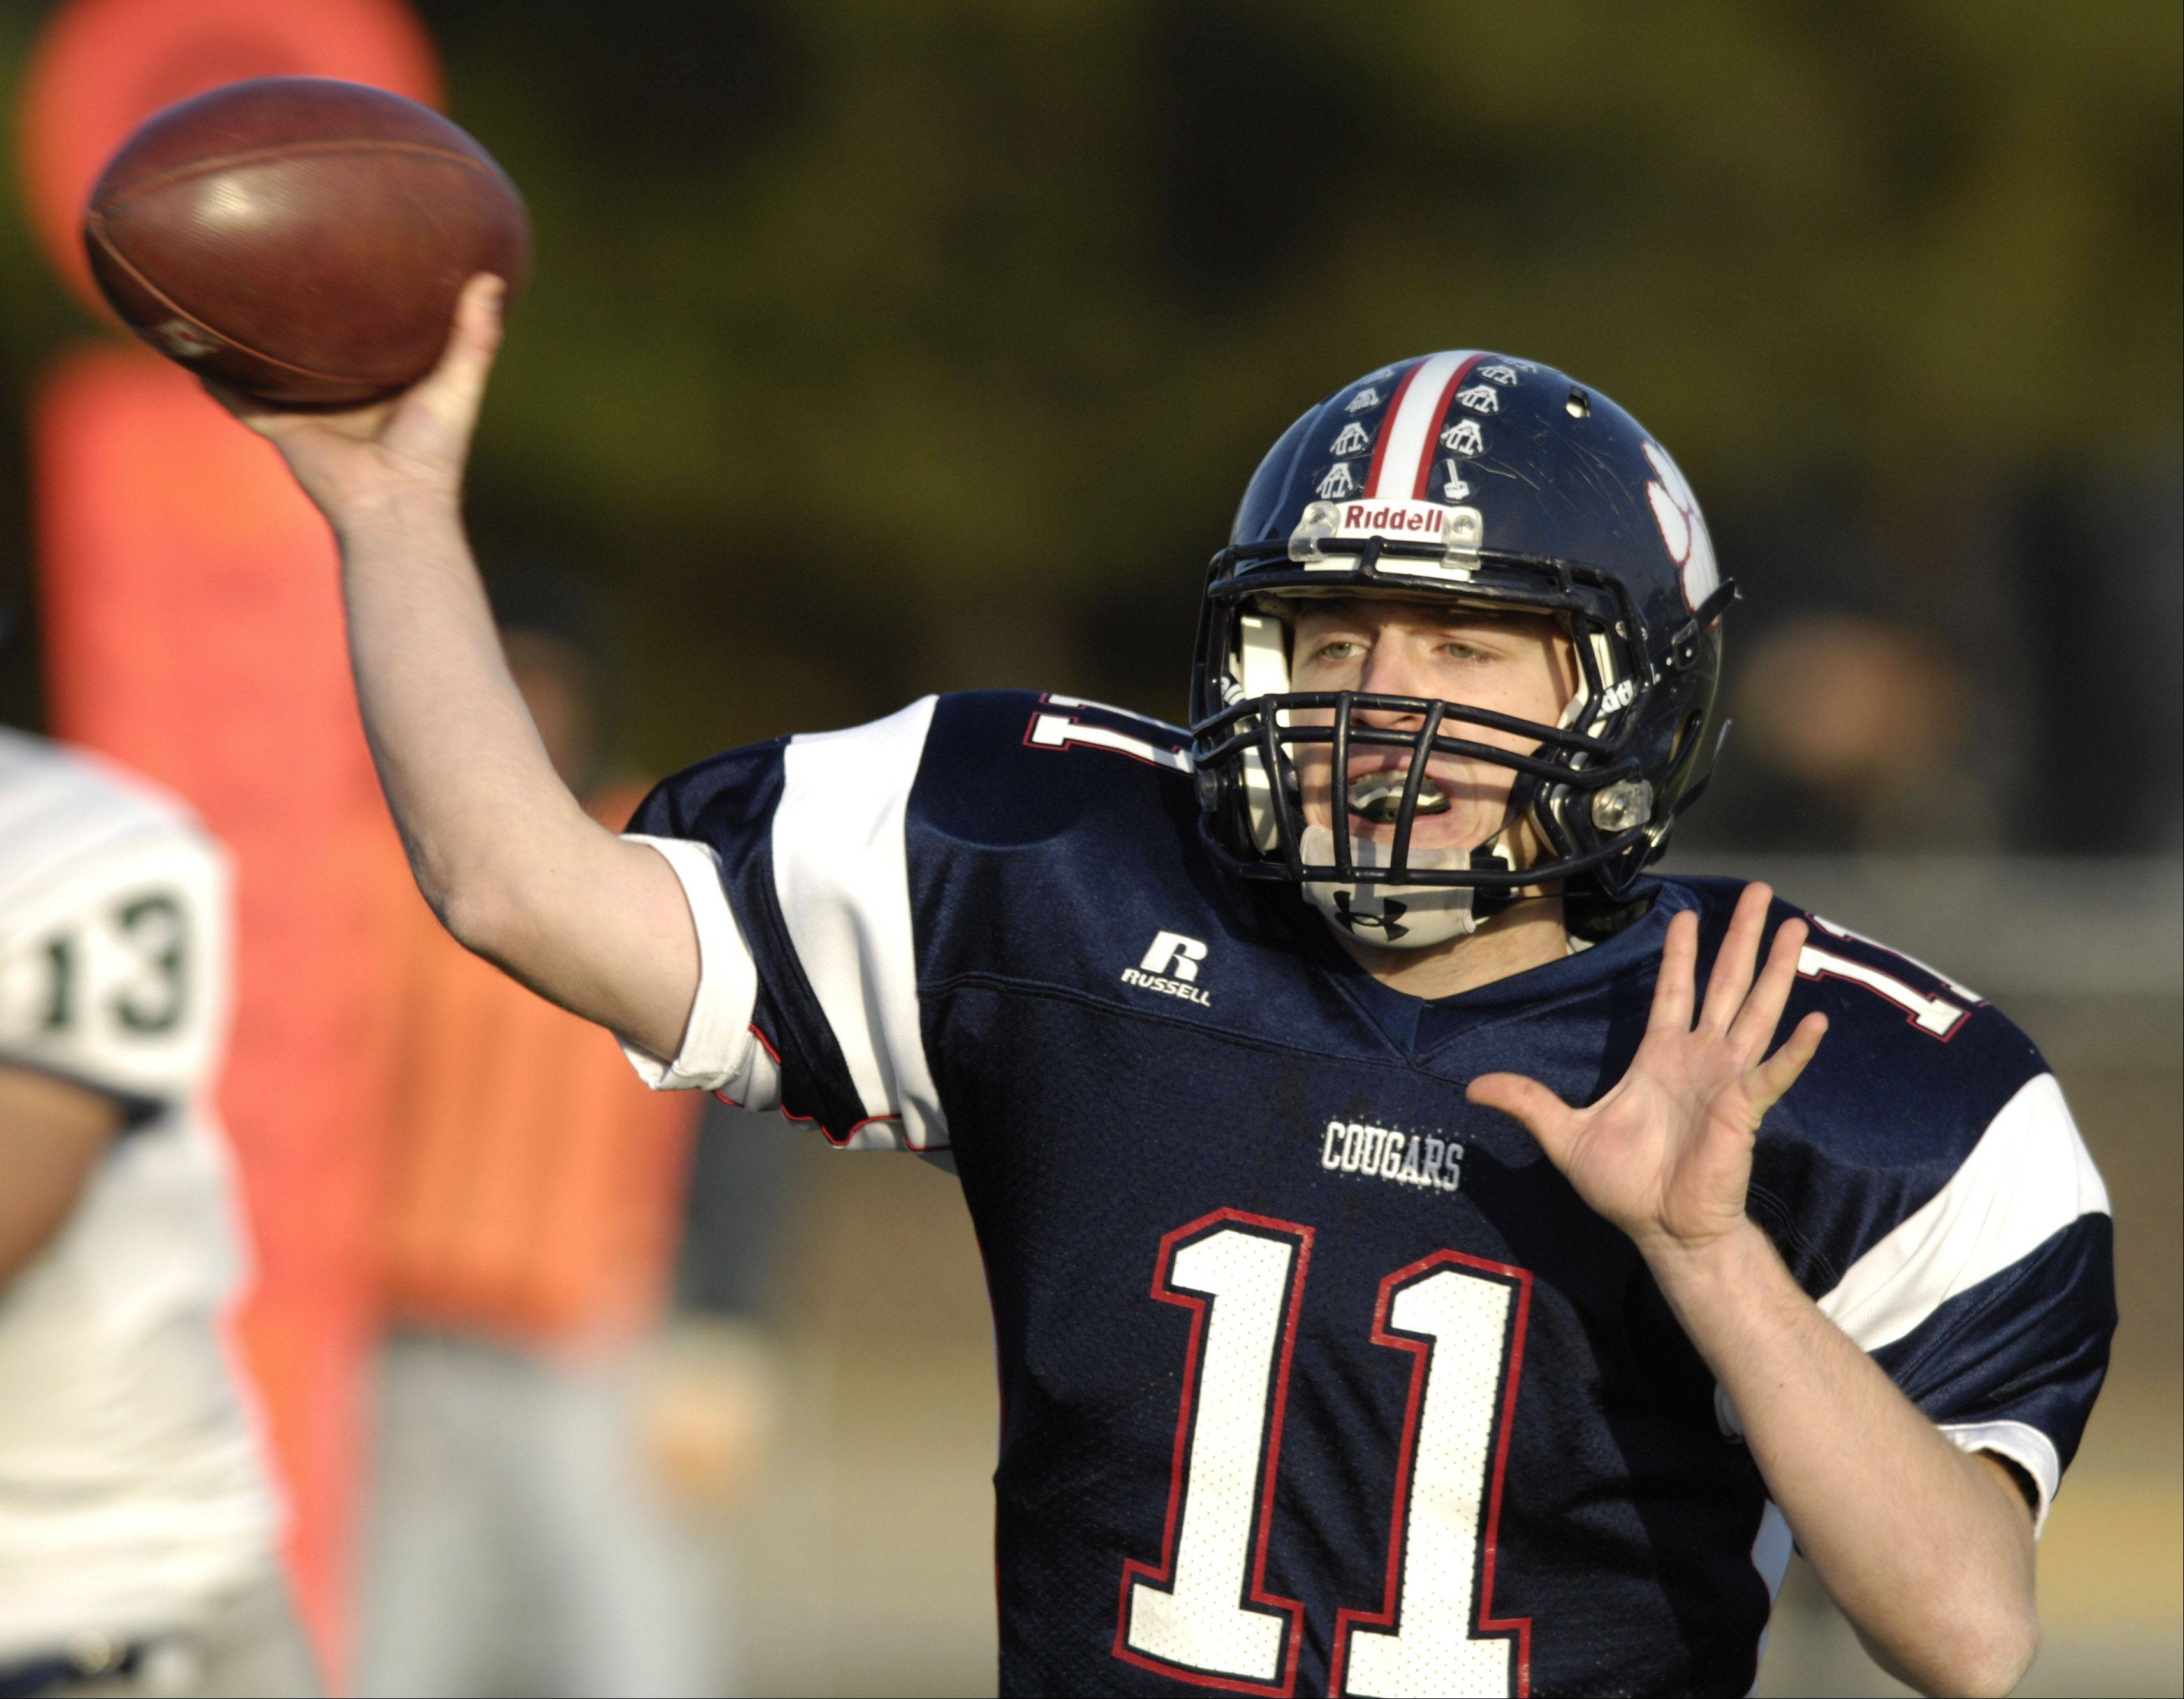 Senior quarterback Danny Modelski is helping keep the family name in Mid-Suburban League football discussions this fall.